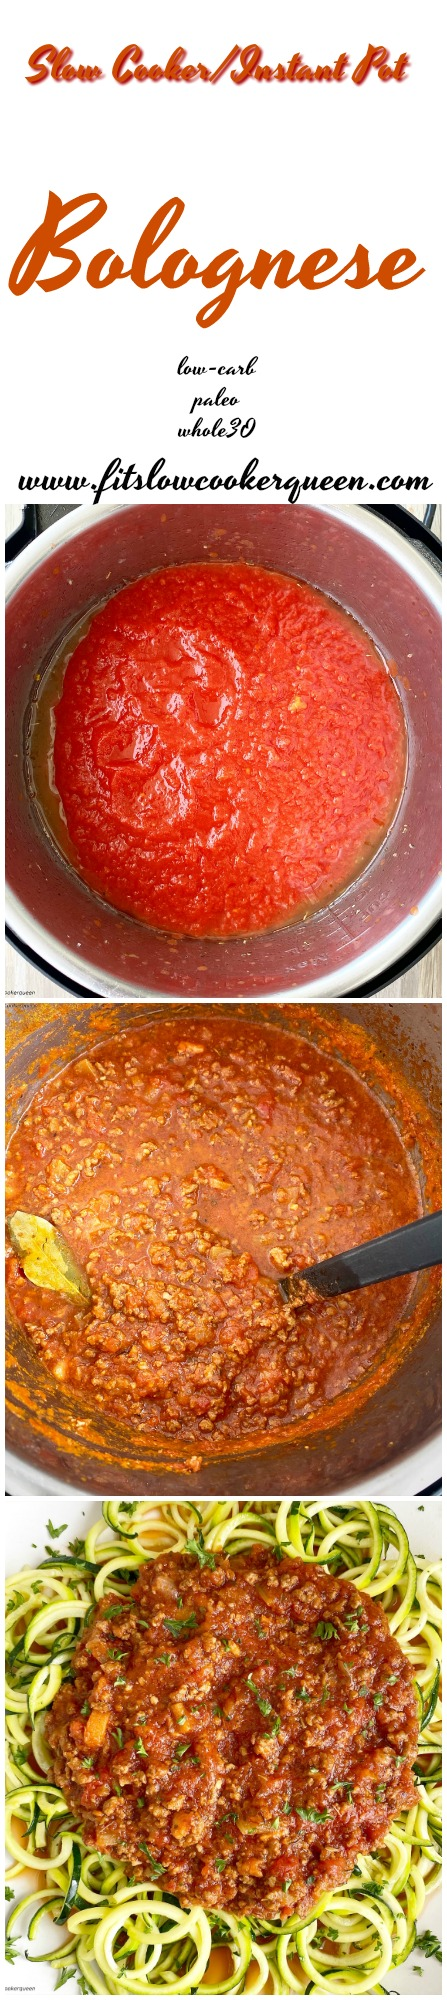 another pinterest pin for Slow Cooker_Instant Pot Bolognese (Low-Carb, Paleo, Whole30)